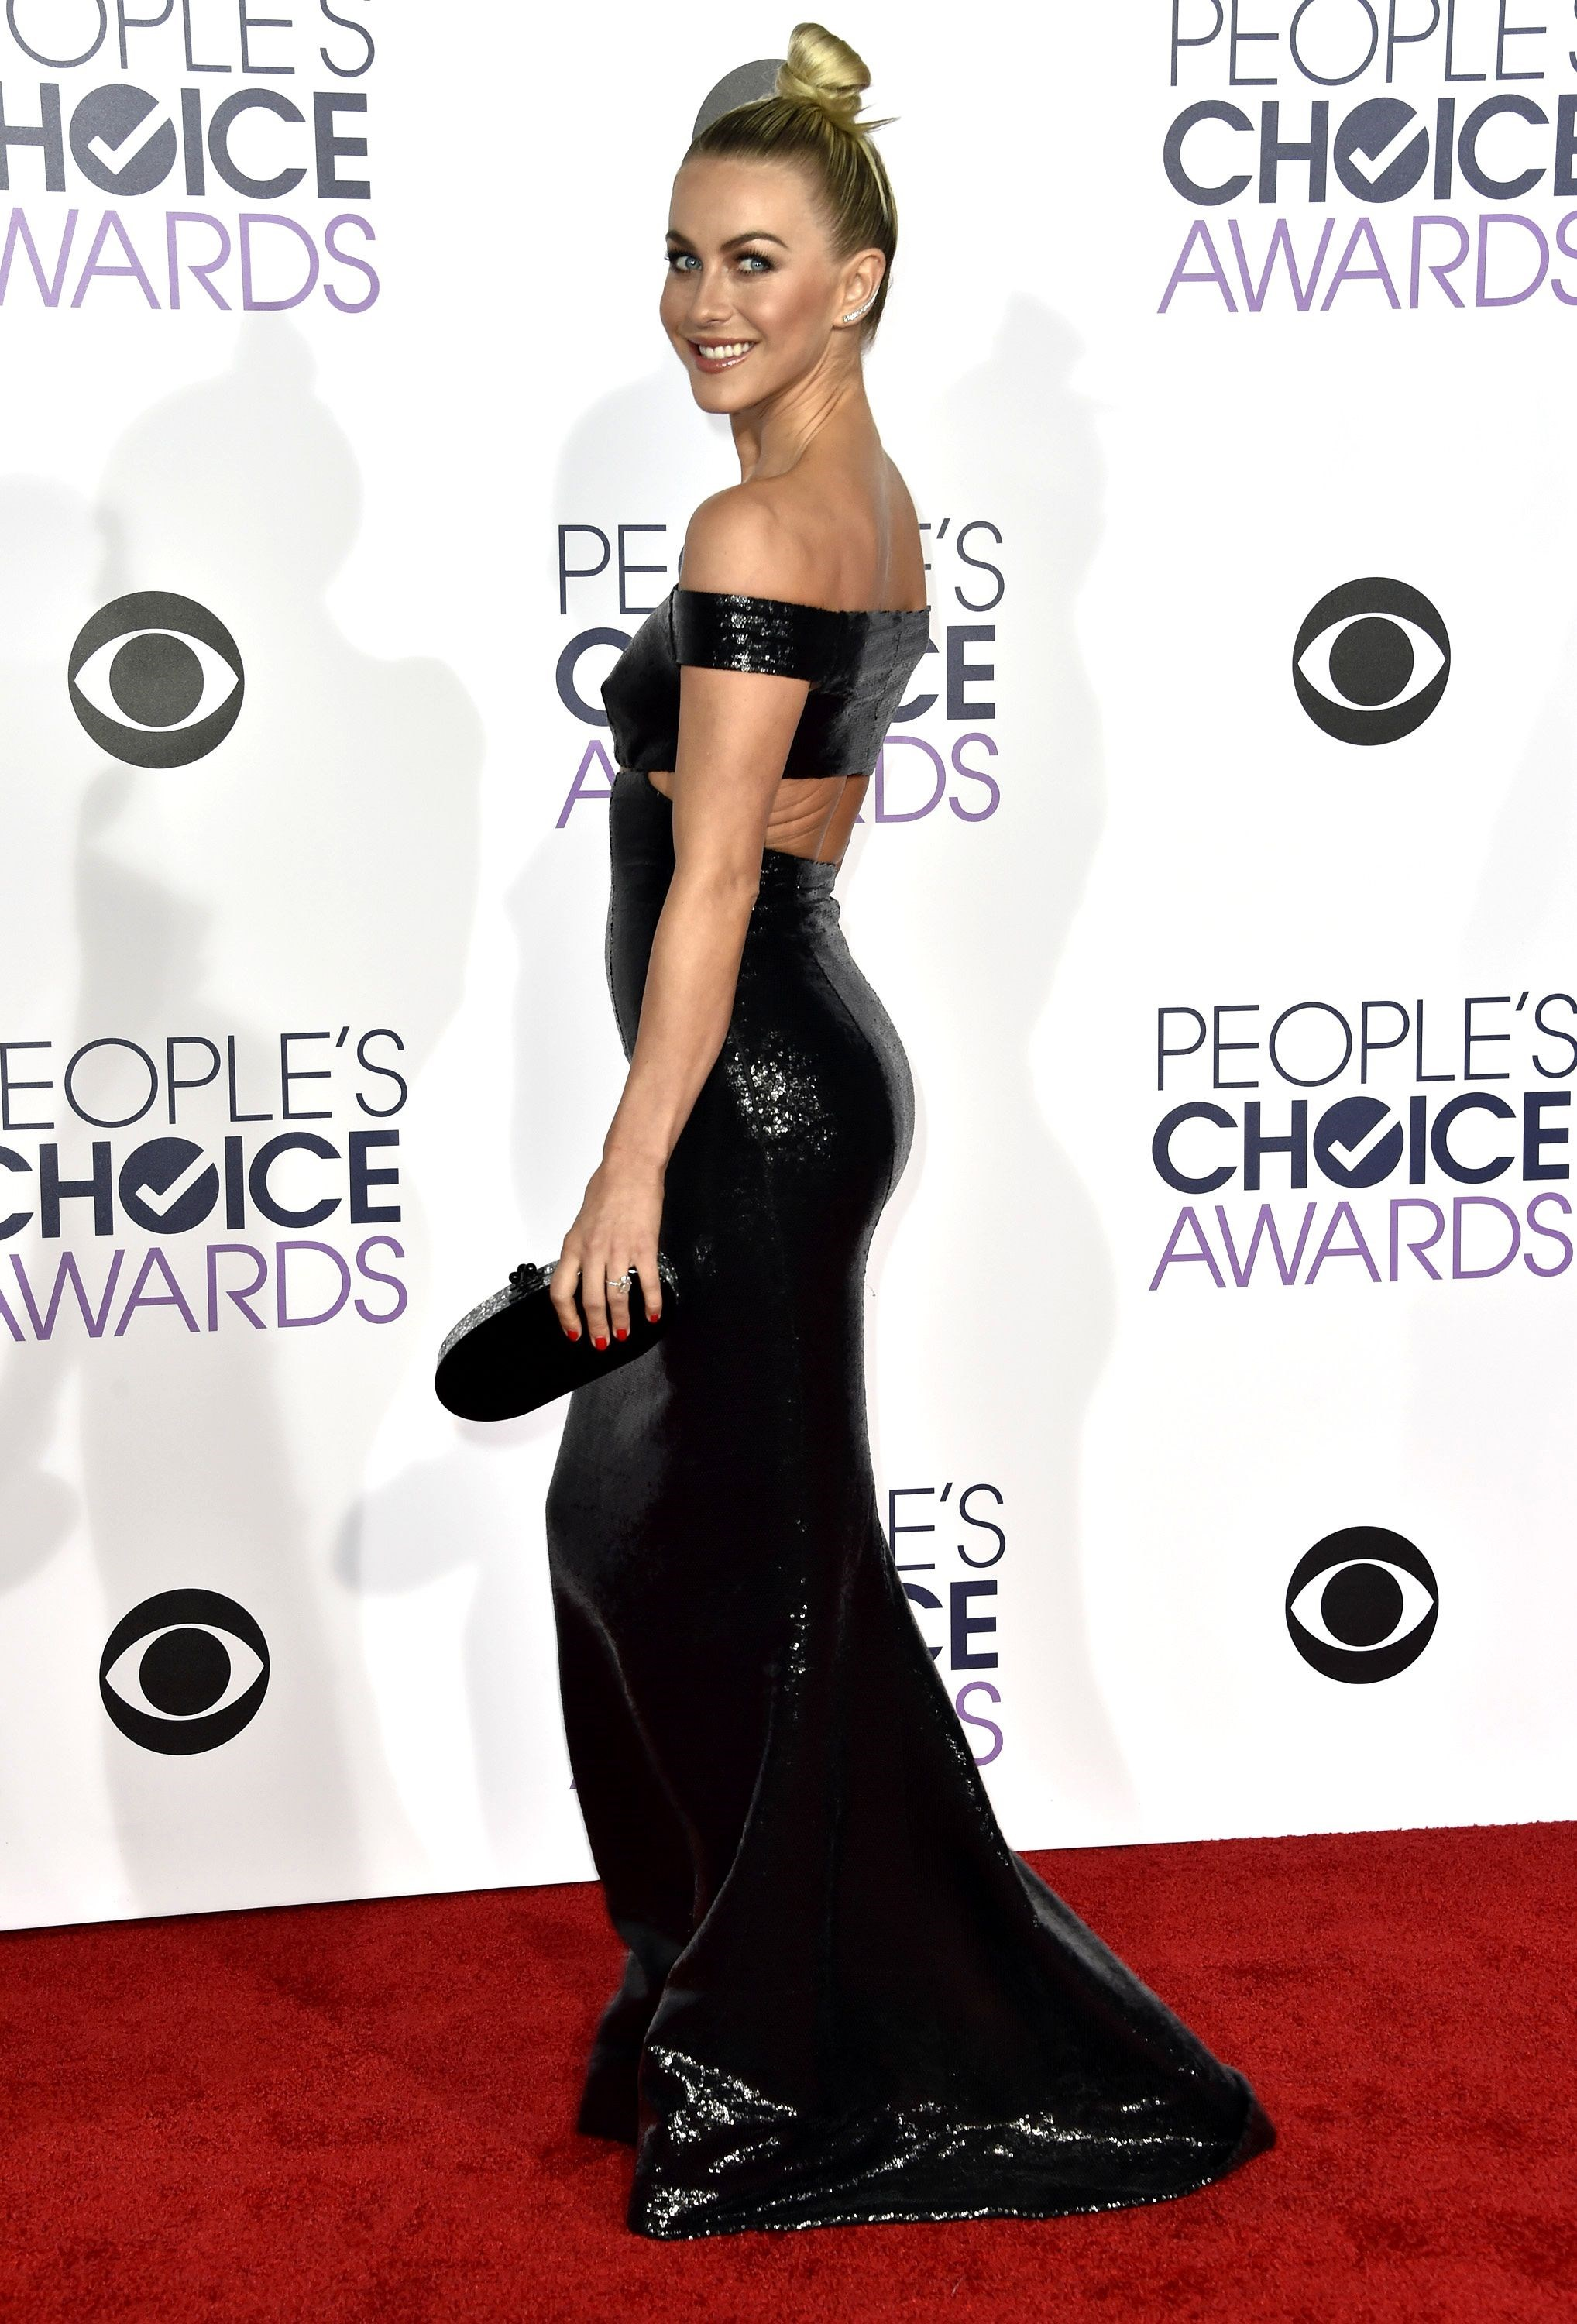 julianne hough people's choice